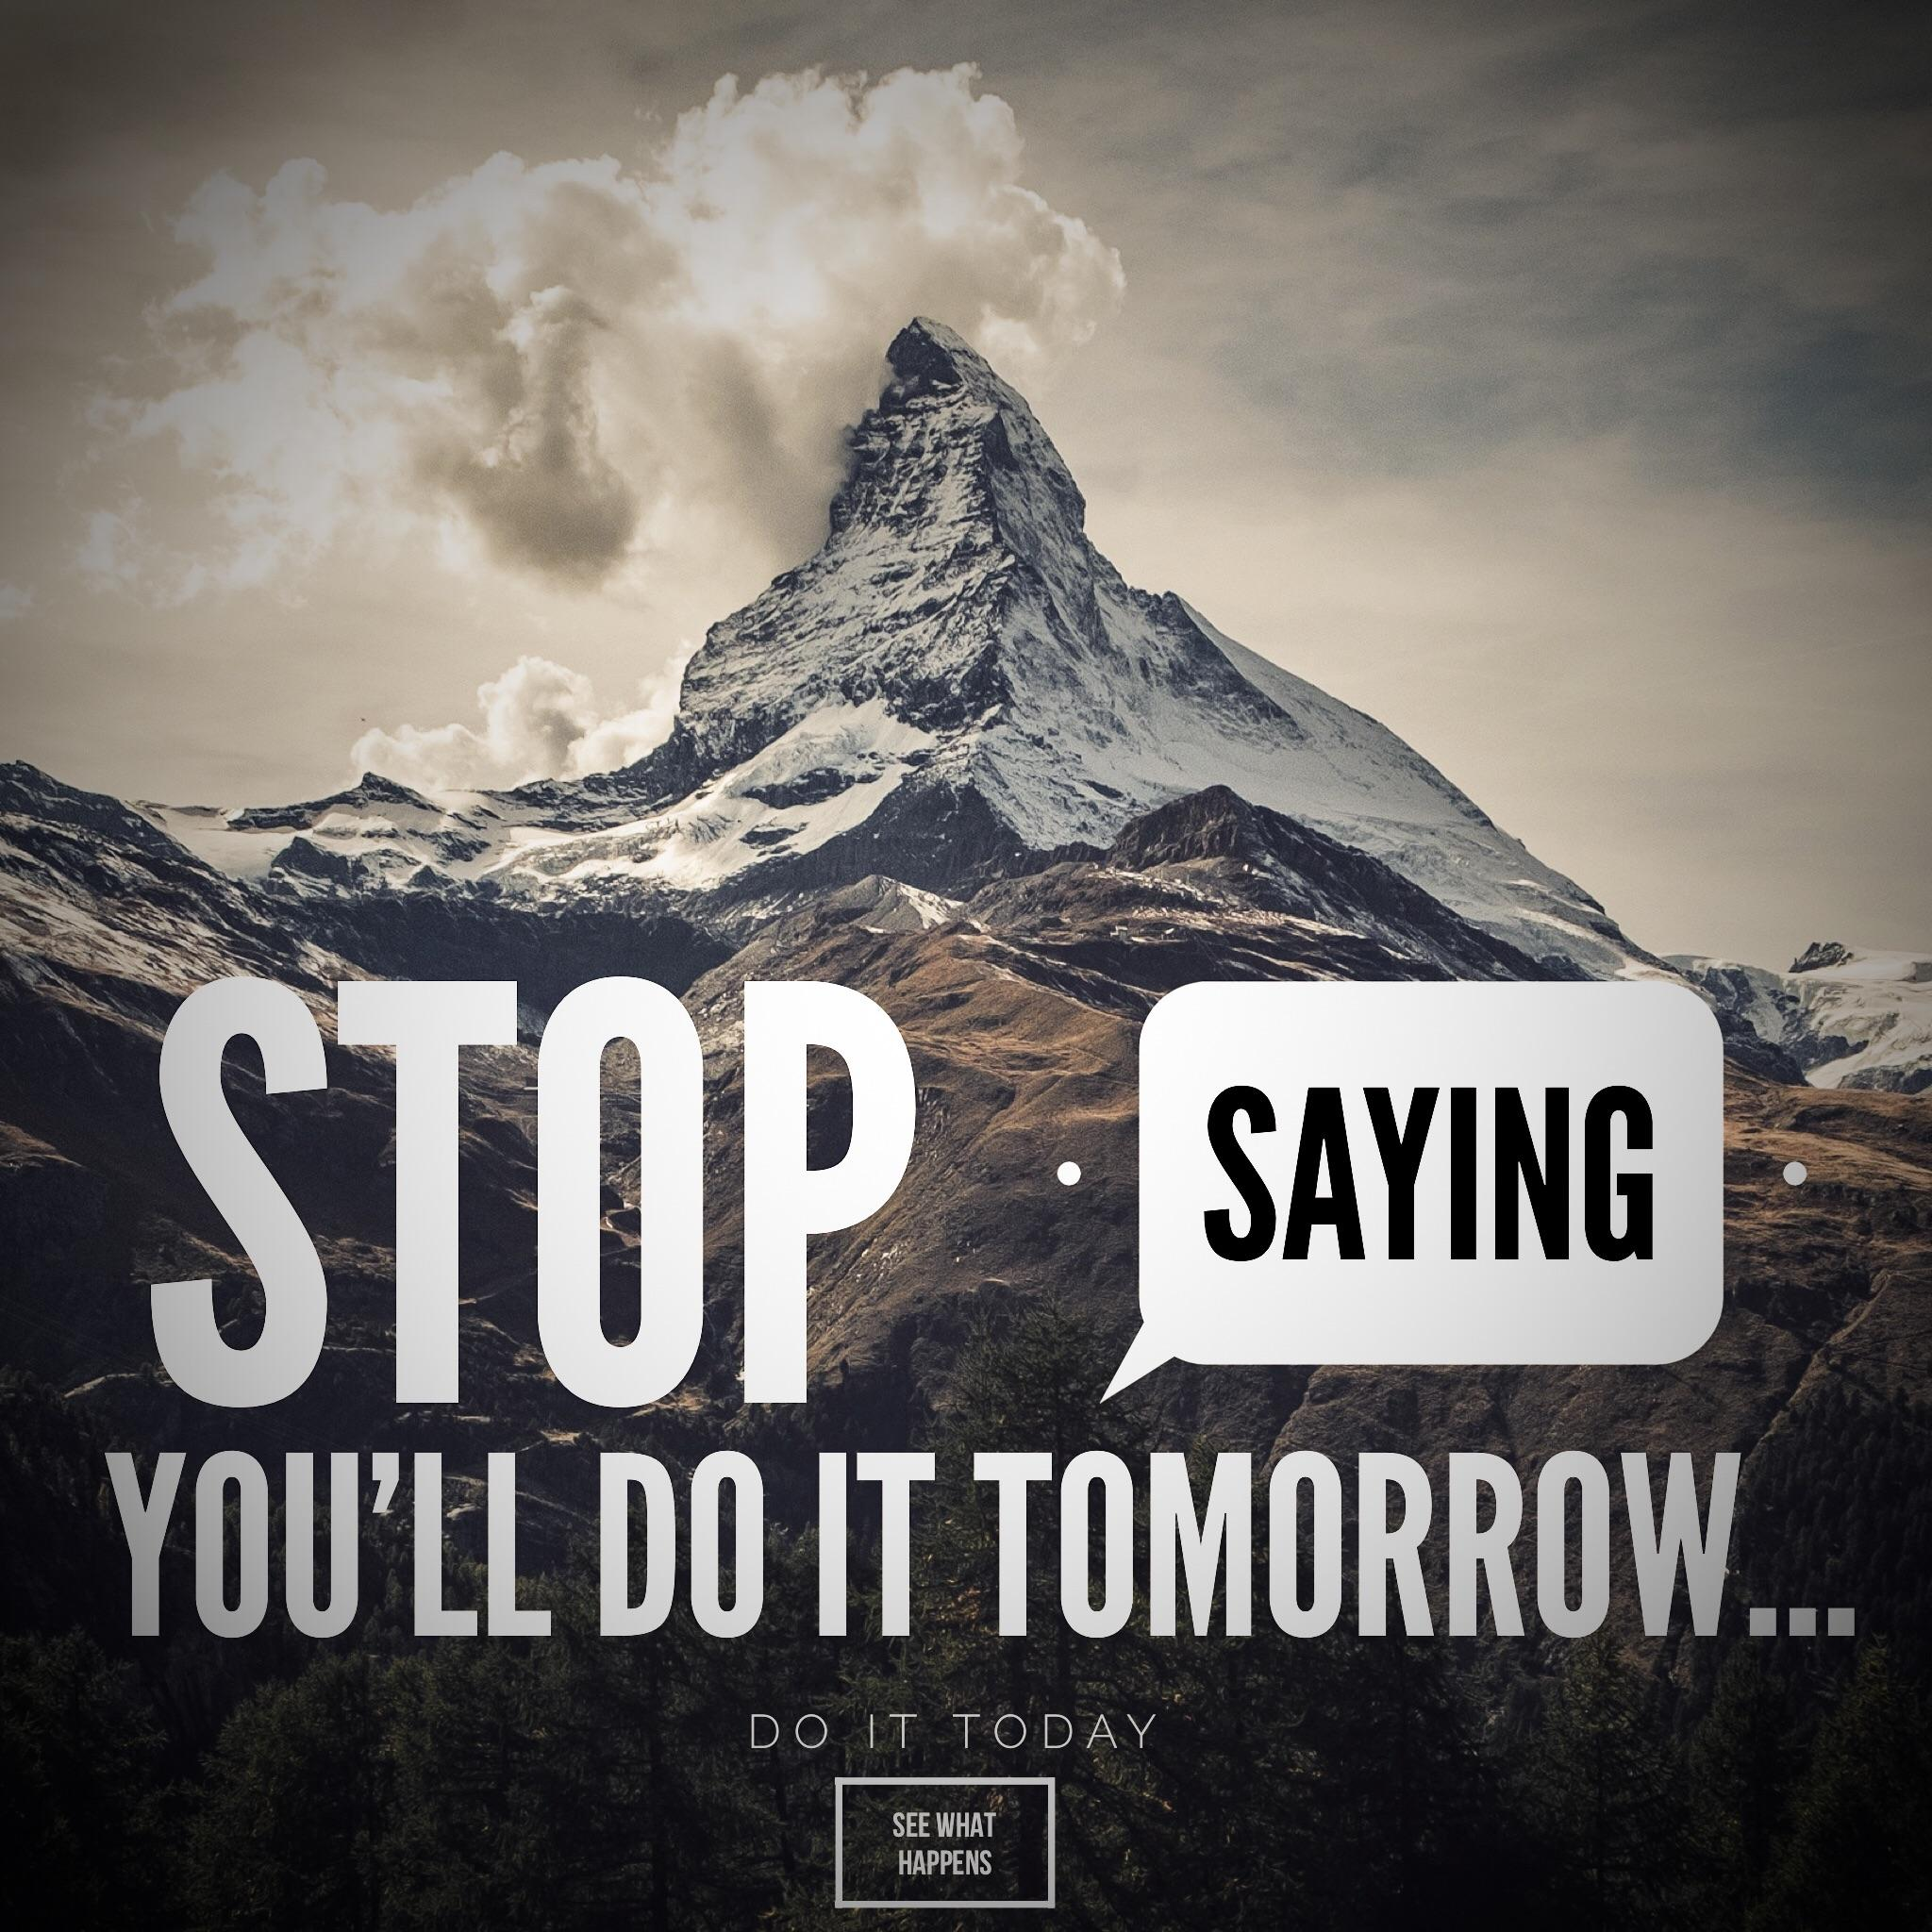 [IMAGE] Stop Saying You'll Do It Tomorrow… Do It Today. See What Happens.